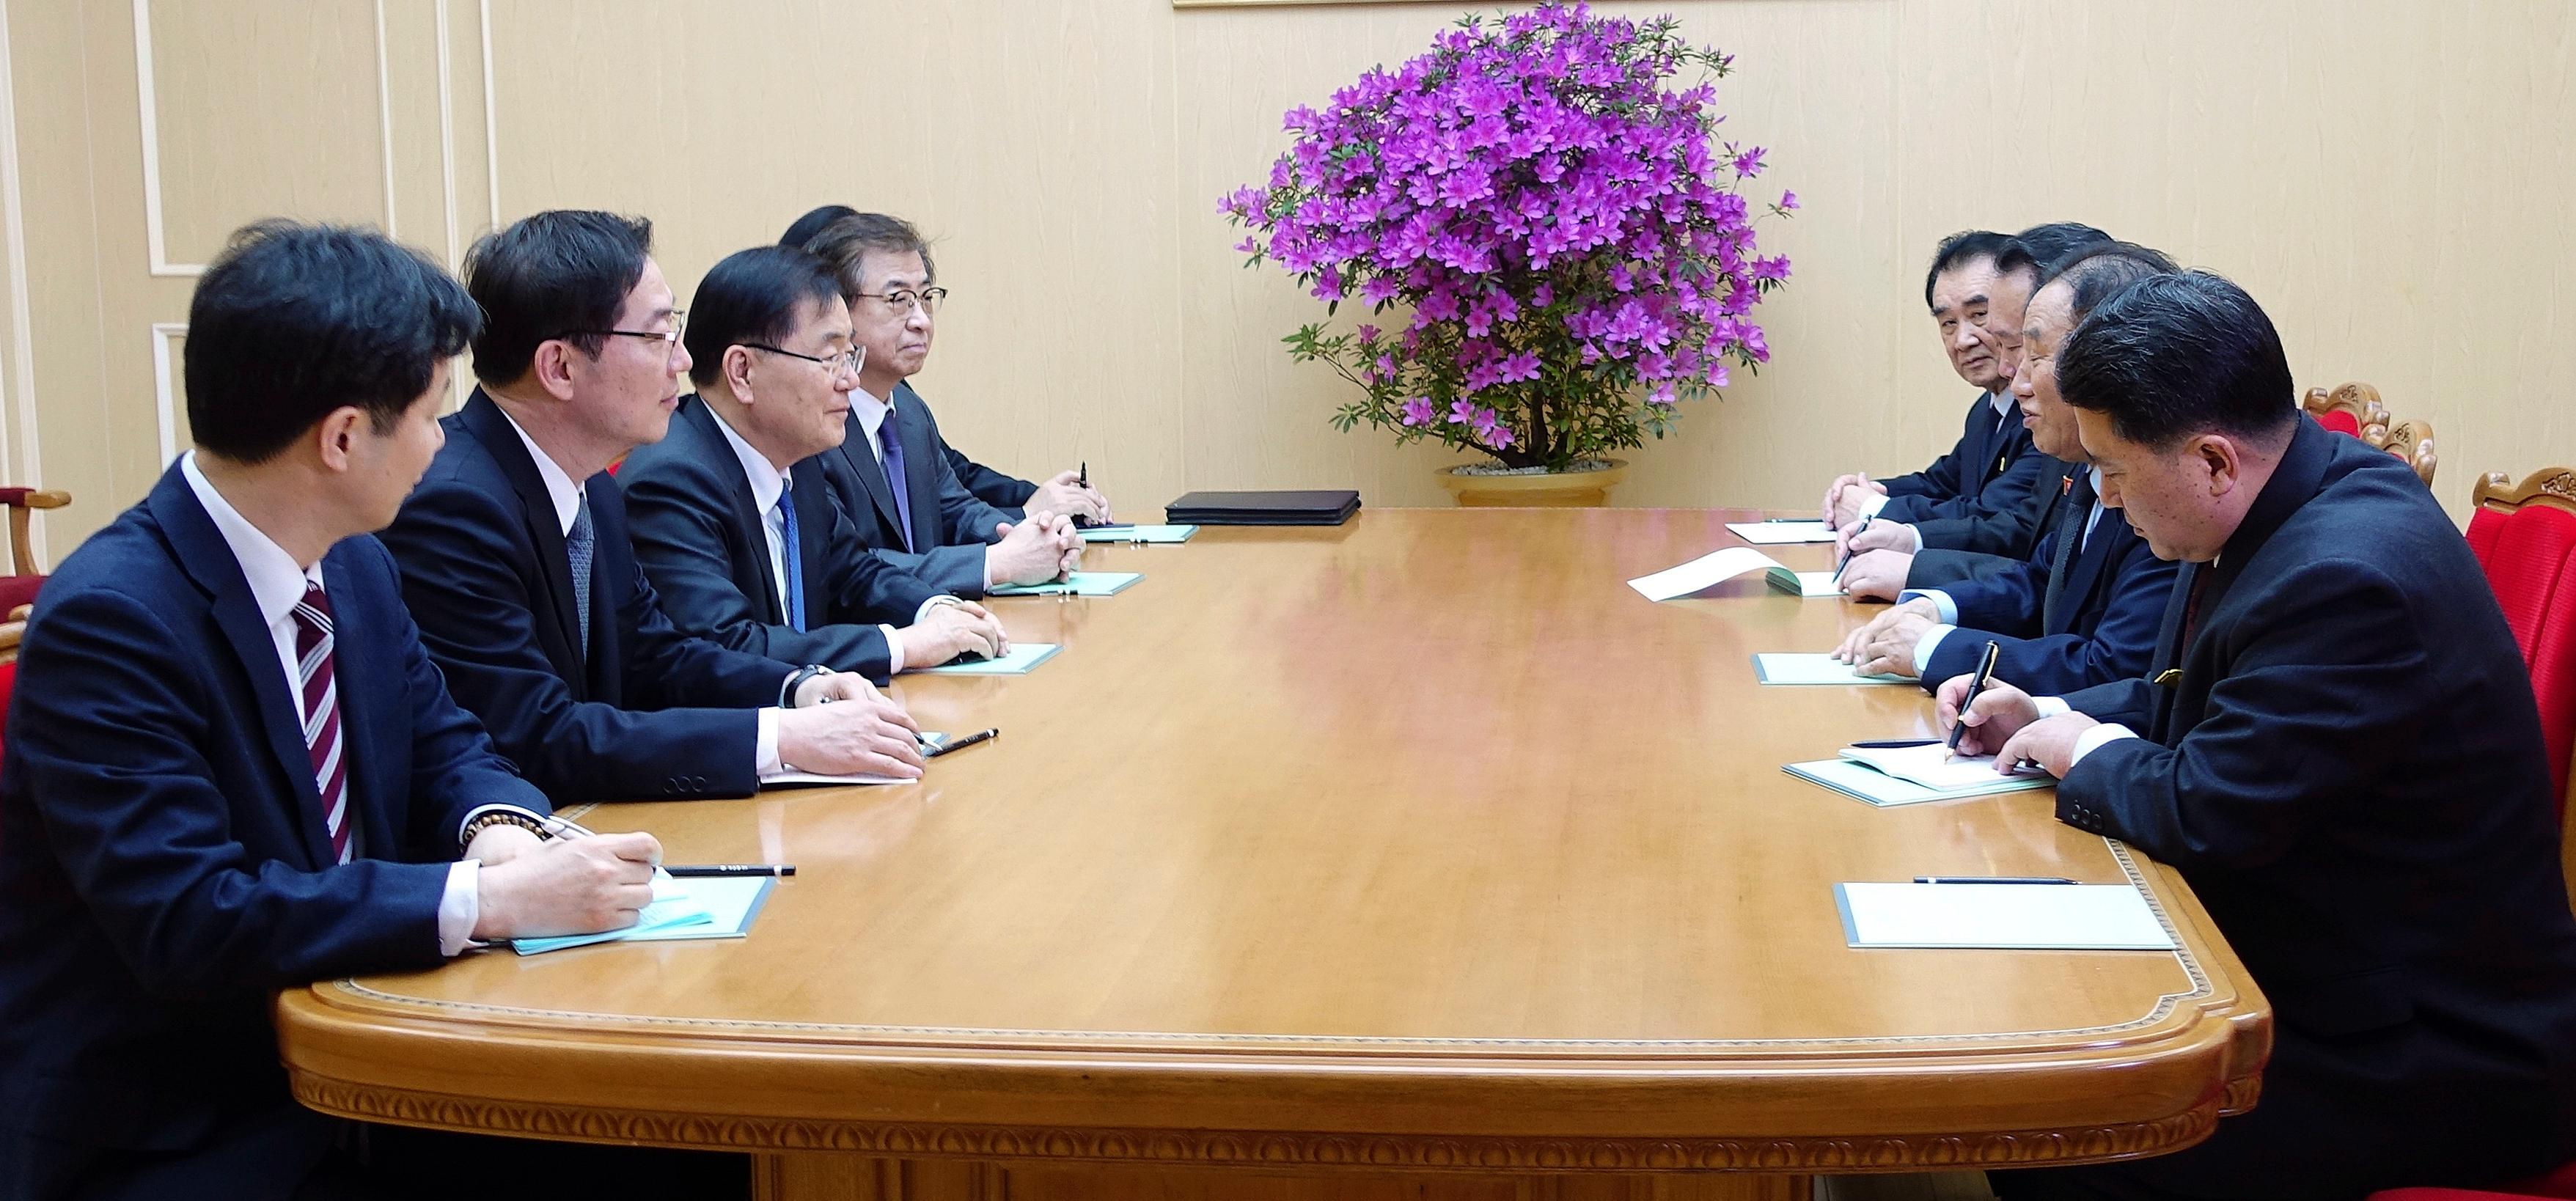 In this photo provided by South Korea Presidential Blue House via Yonhap News Agency, South Korean national security director, Chung Eui-yong, third from left, meets with North Korean vice chairman of North Korea's ruling Workers' Party Central Committee, Kim Yong Chol, second from right, in Pyongyang, North Korea, Monday, March 5, 2018. The envoys for South Korean President Moon Jae-in are on a rare two-day visit to Pyongyang that's expected to focus on how to ease a standoff over North Korea's nuclear ambitions and restart talks between Pyongyang and Washington. (South Korea Presidential Blue House/Yonhap via AP)